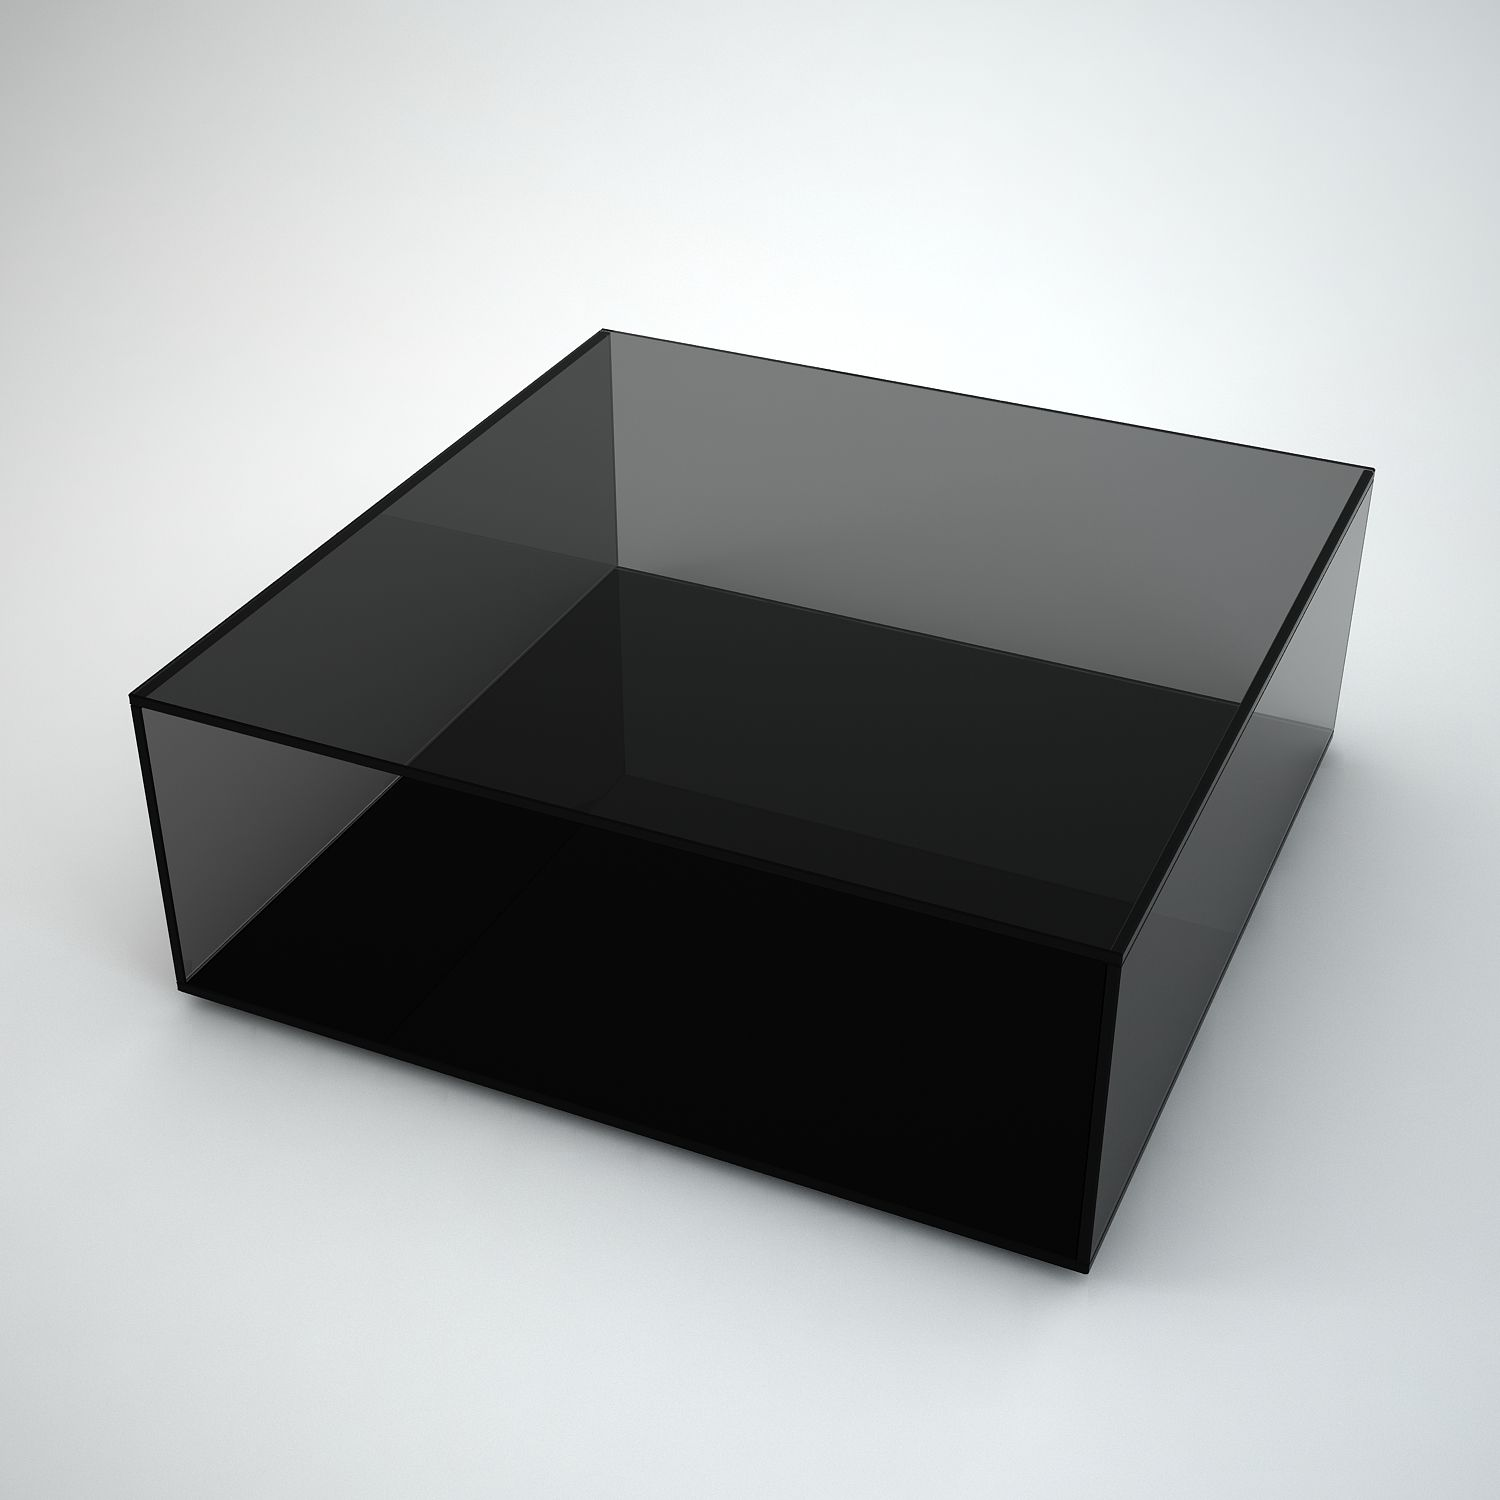 Quebec Square Grey Tint Glass Coffee Table By Klarity Klarity Glass Furniture Glass Coffee Table Black Glass Coffee Table Large Square Coffee Table [ 1500 x 1500 Pixel ]